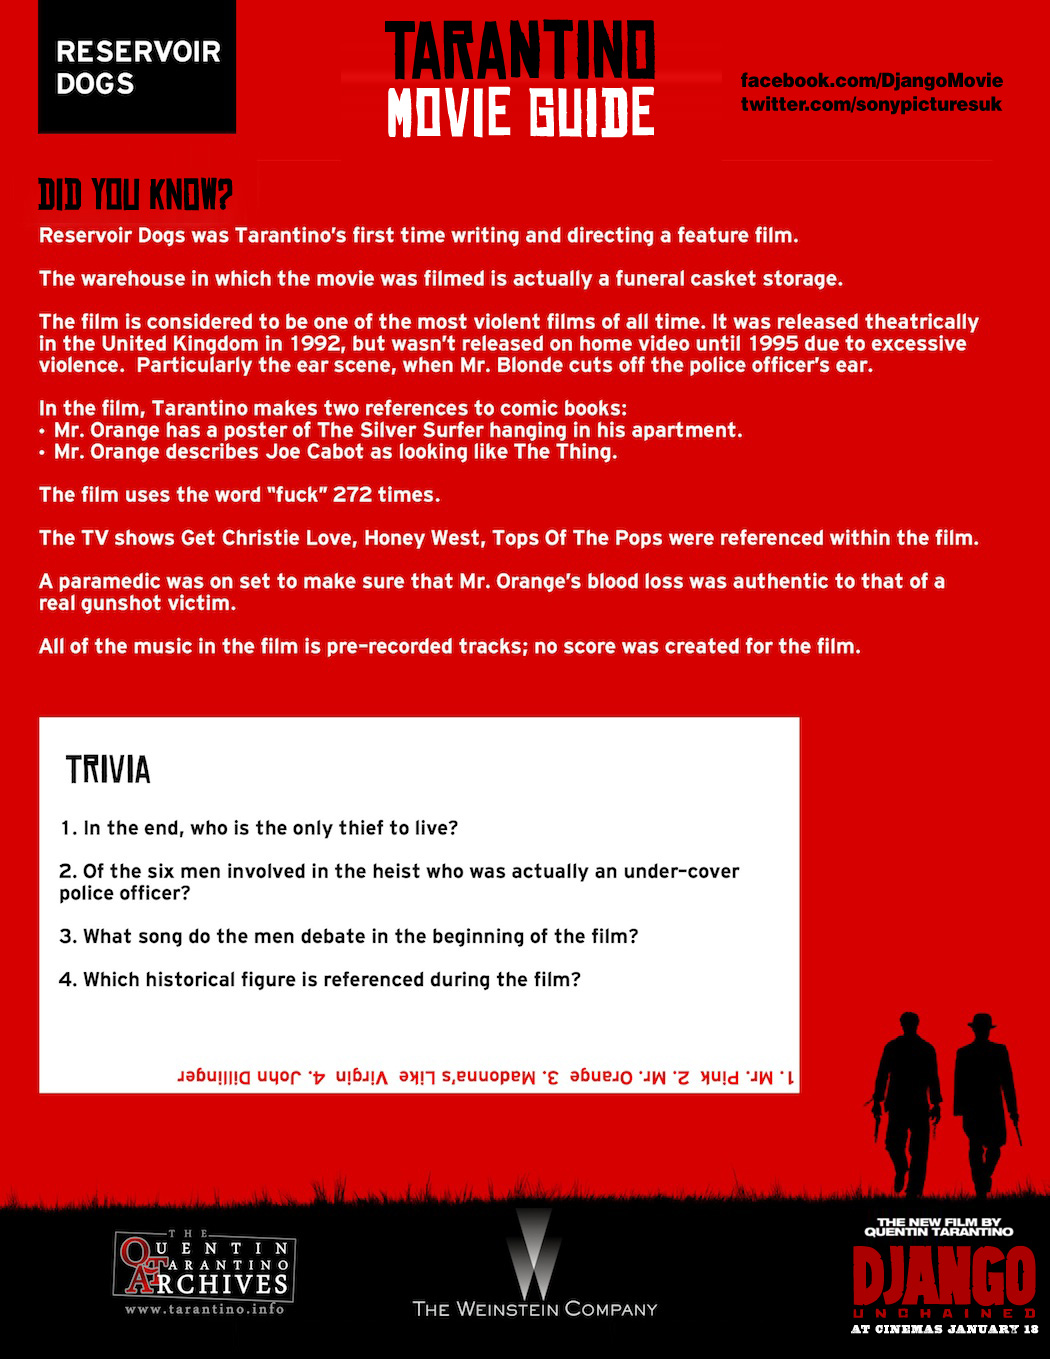 Tarantino Movie Guide - Reservoir Dogs